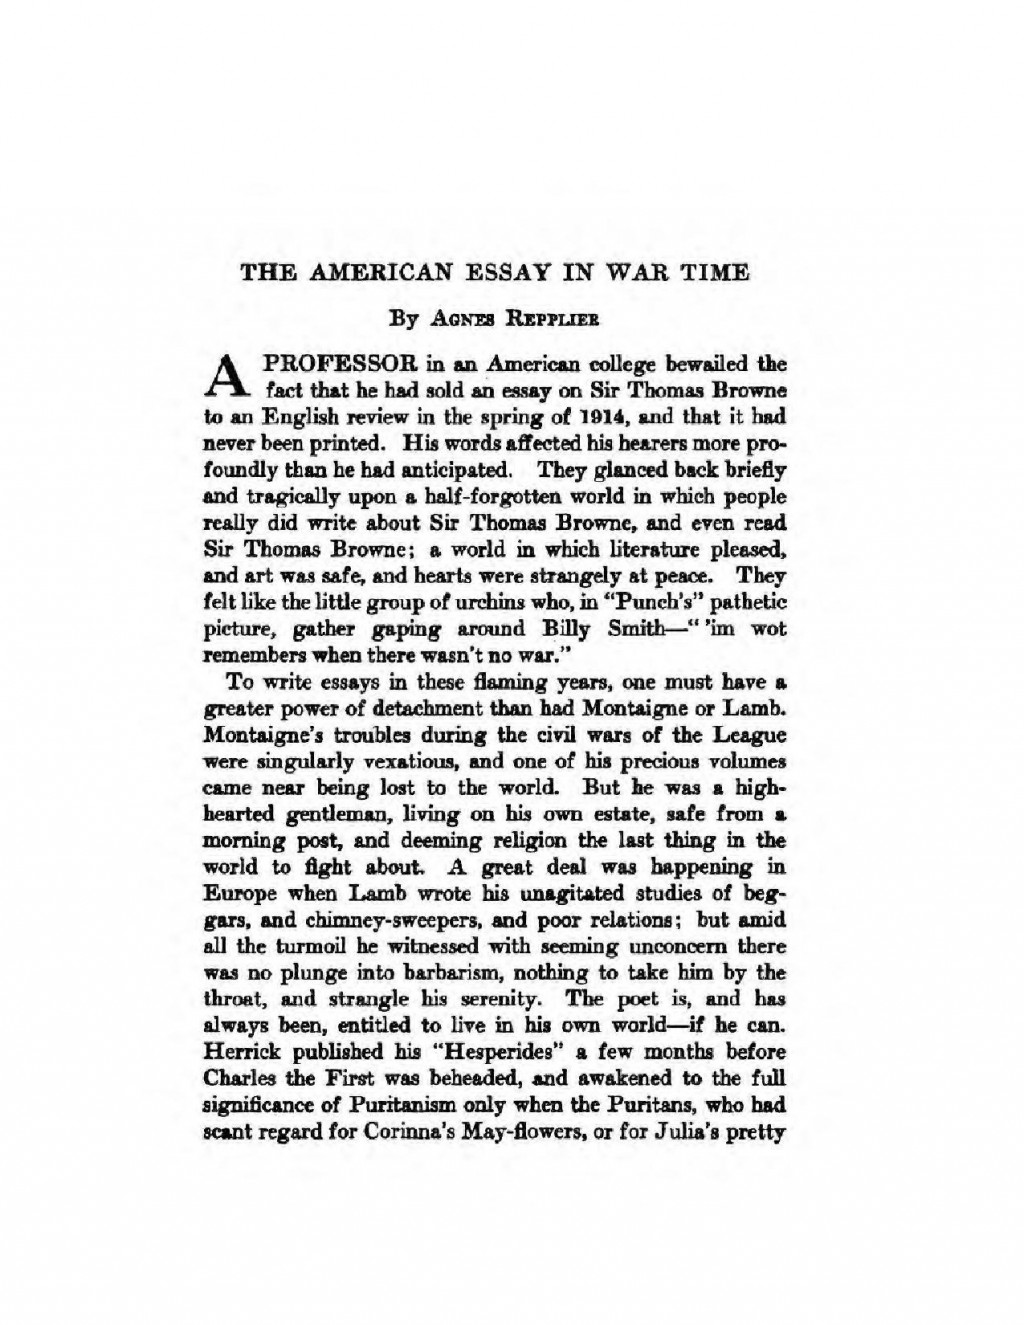 009 Essay Example What Is An American Page1 1275px The In War Time2c Agnes Repplier2c 1918 Stupendous Thesis Your Dream Ideas Large